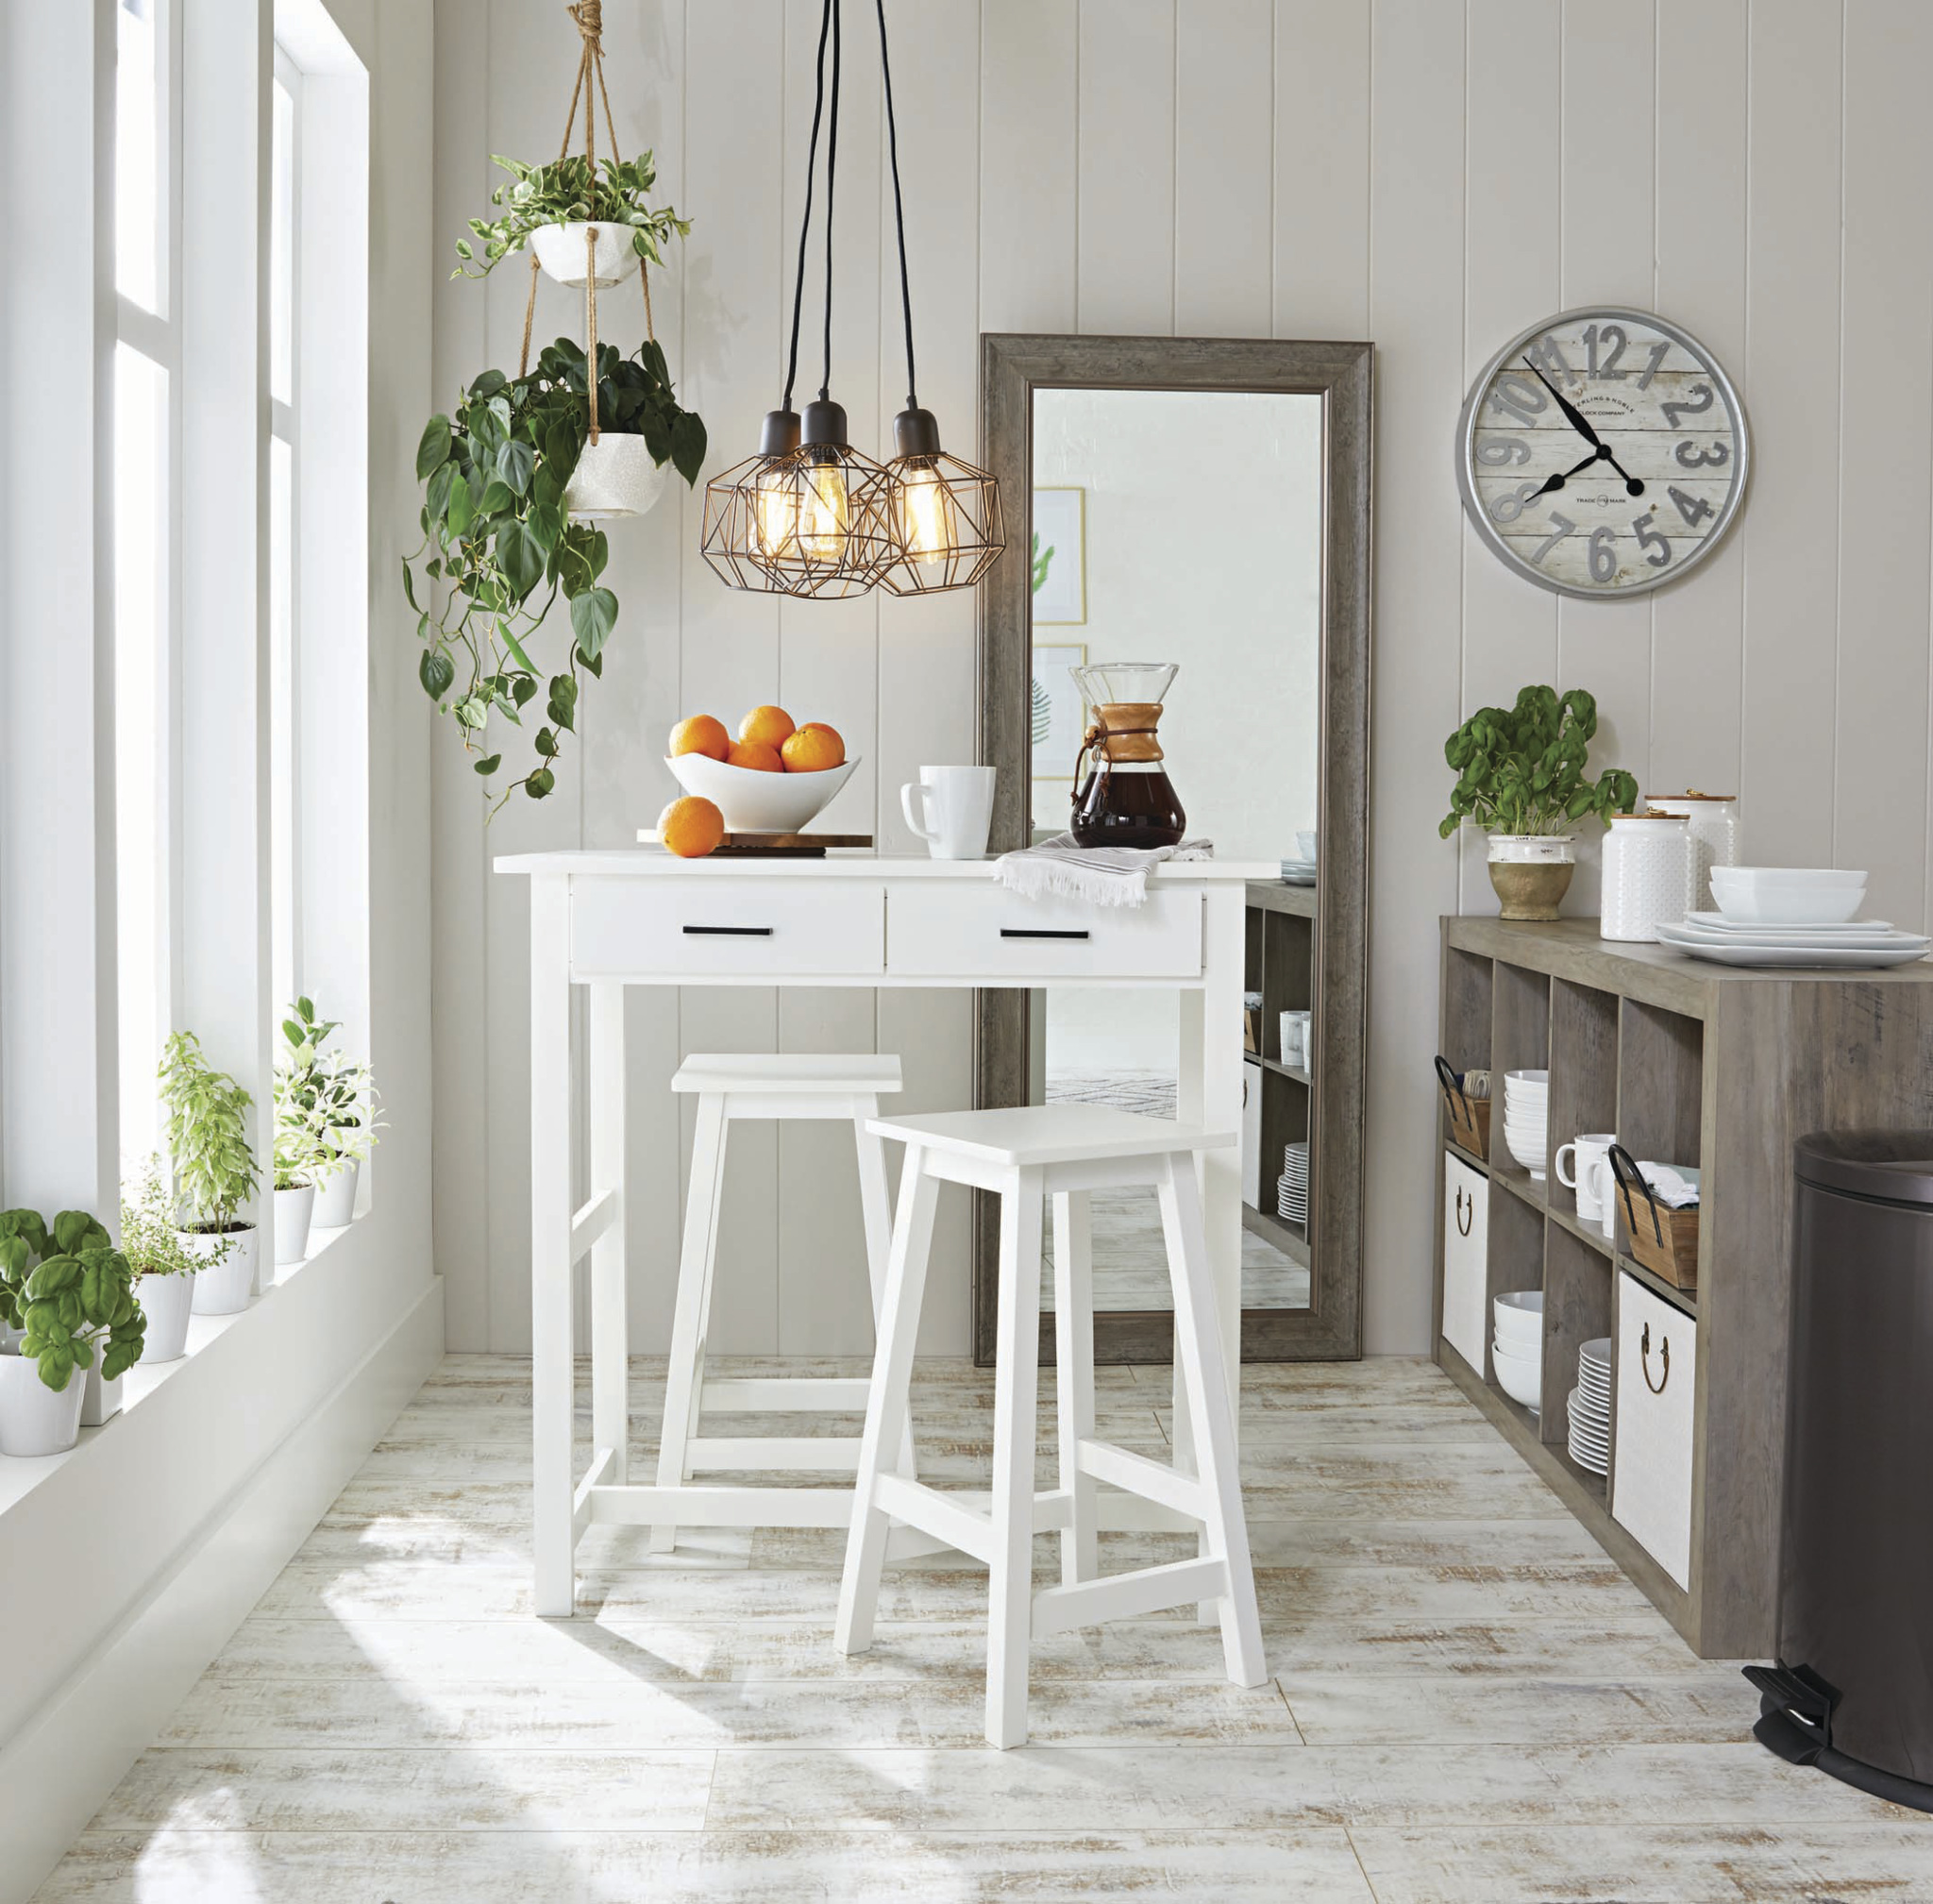 Better Homes and Gardens 3 Piece Pub Set